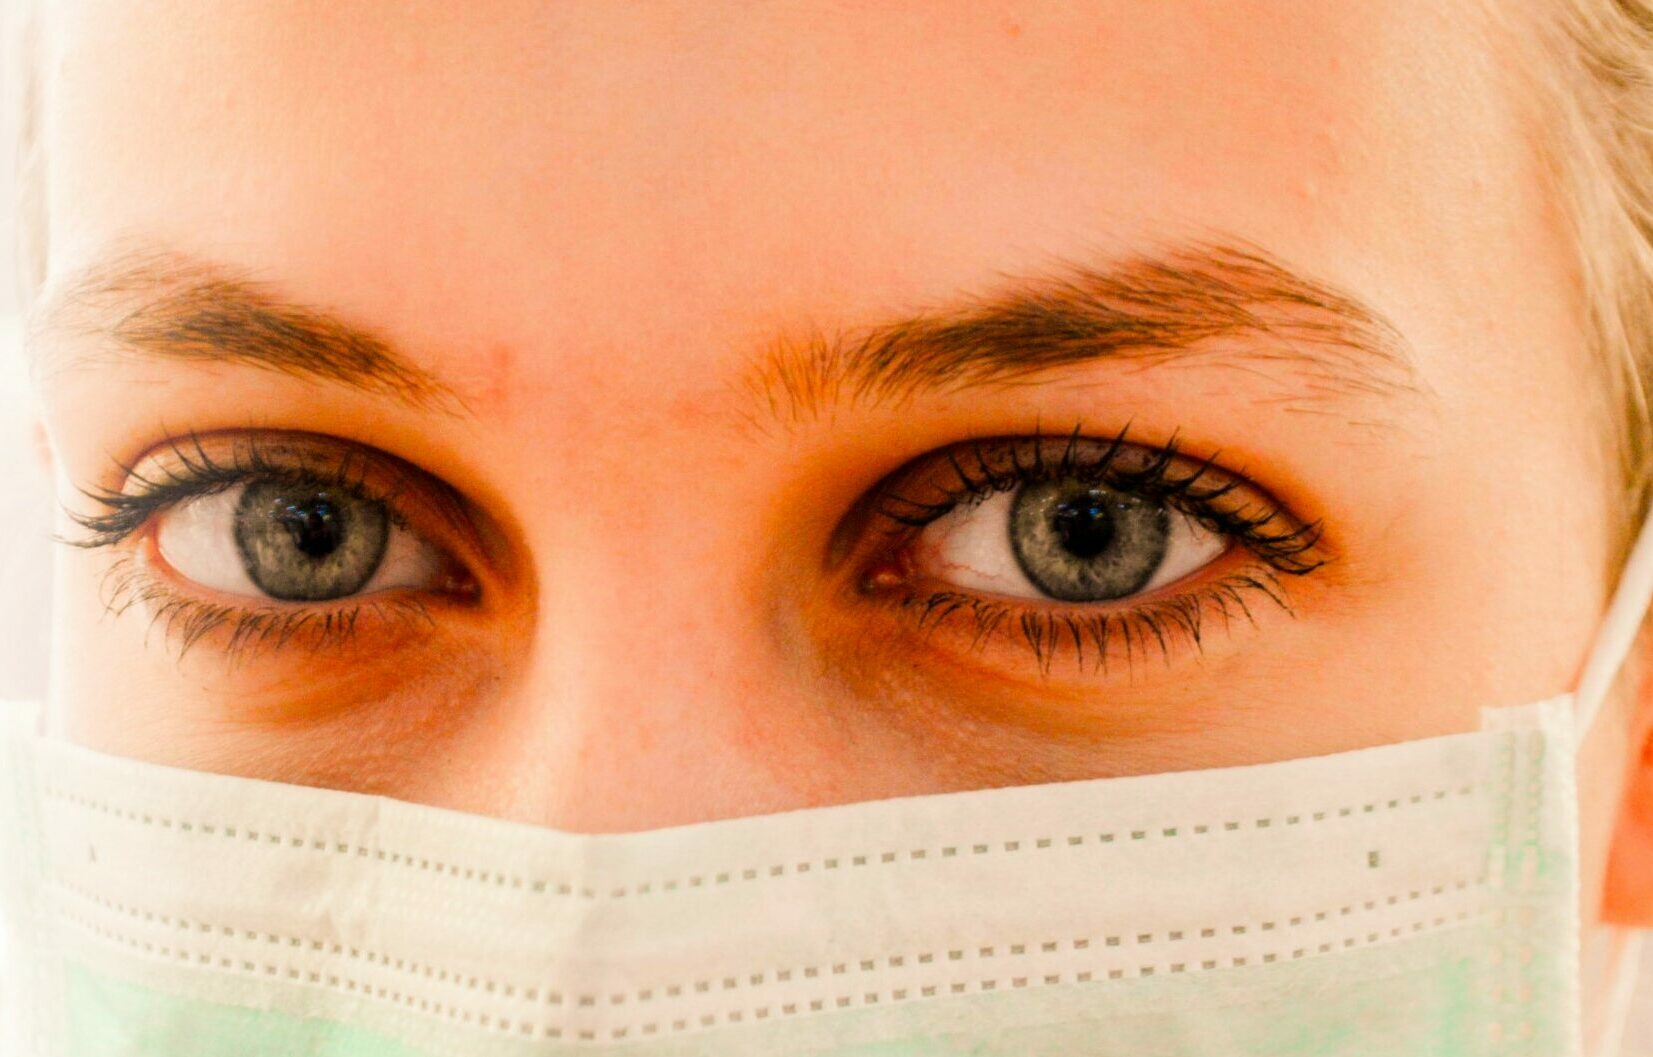 Close up of the face of a woman wearing a surgical face mask